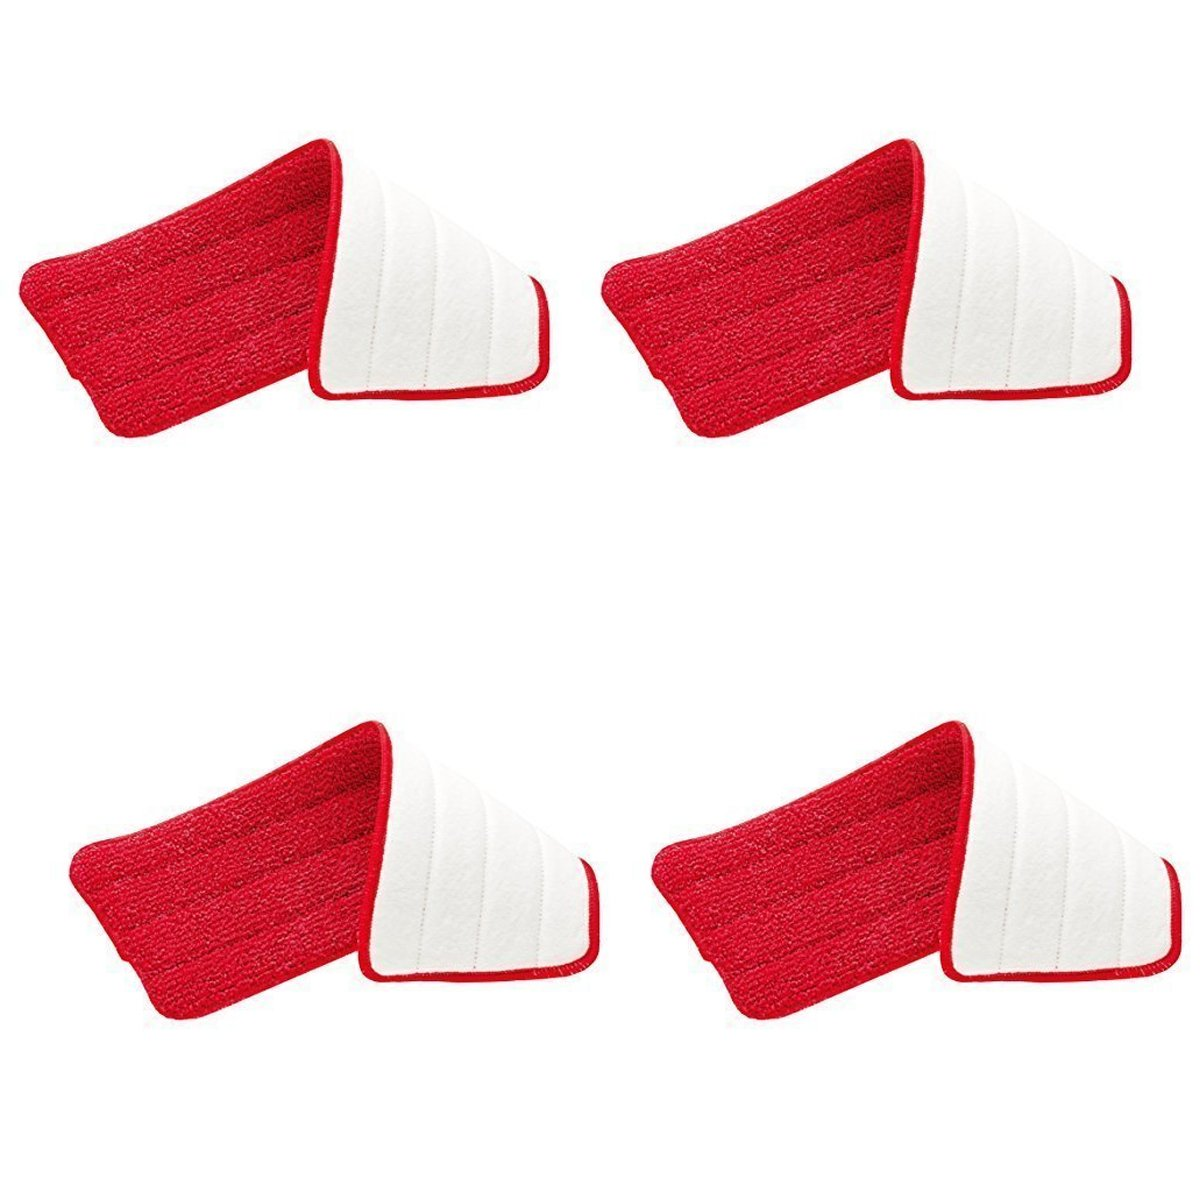 """Rubbermaid - Reveal Mop Microfiber Cleaning Pad, Red, 15"""" Wide (4-Pack)"""